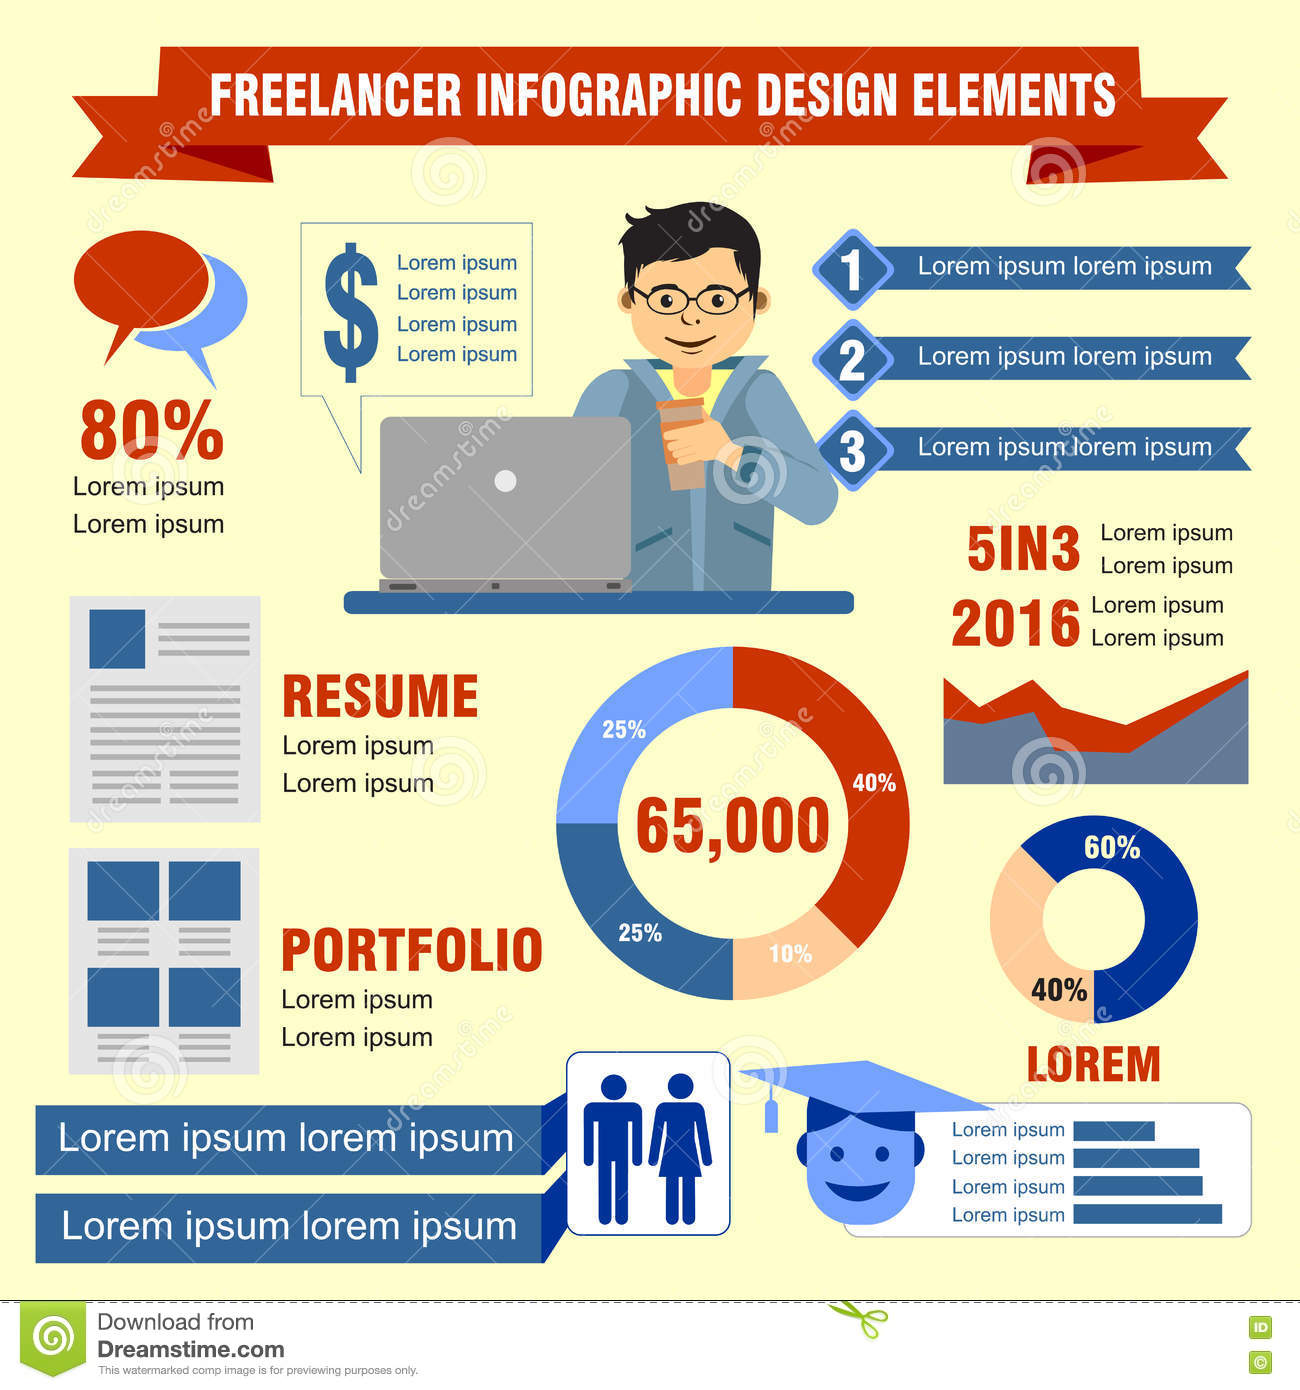 design freelancer